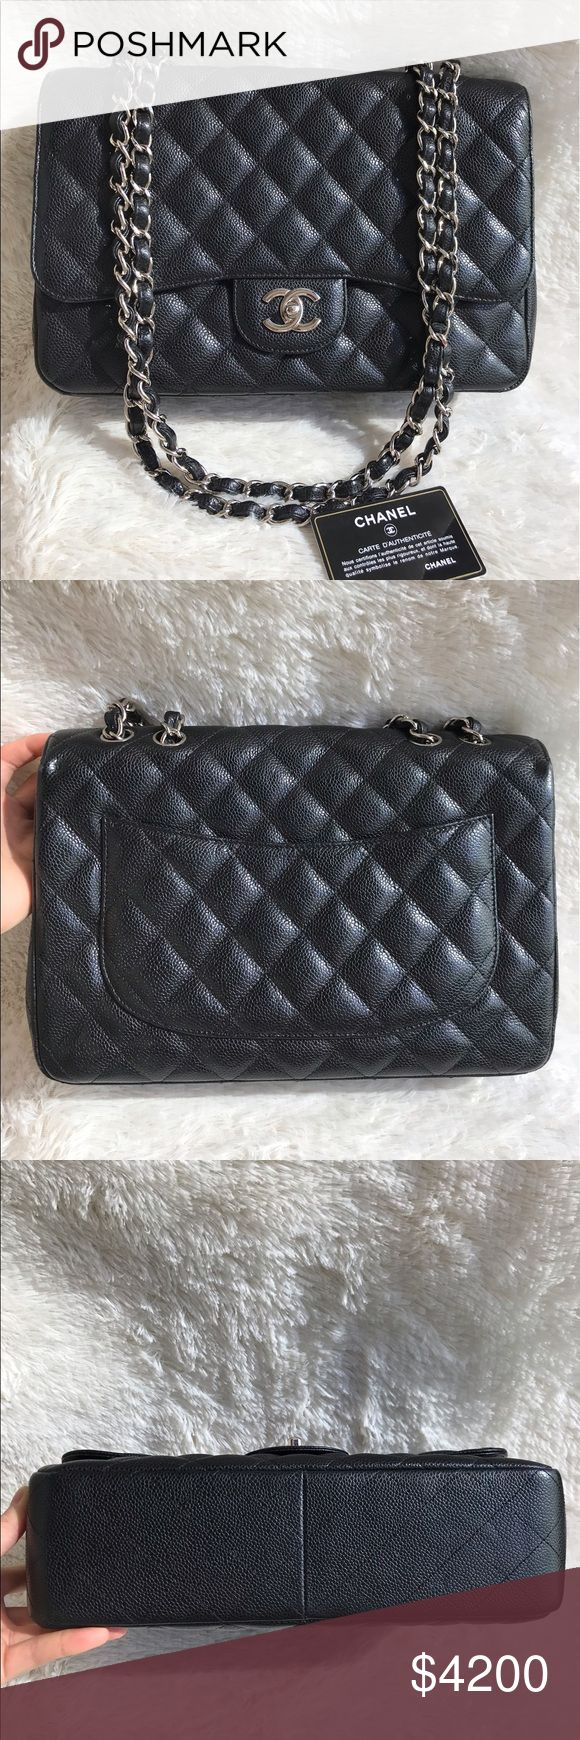 Authentic Chanel CF Jumbo Single Flap Black Caviar Classic Flap Jumbo in Single Flap, discontinued model hence you can't get it from Chanel store anymore. In pre-owned condition 8.5/10. With normal usage signs like scratches on hardware & creases on leather. Overall the condition is still good. With hologram, authenticity card & dust bag. Authenticity guaranteed otherwise full return. CHANEL Bags Shoulder Bags